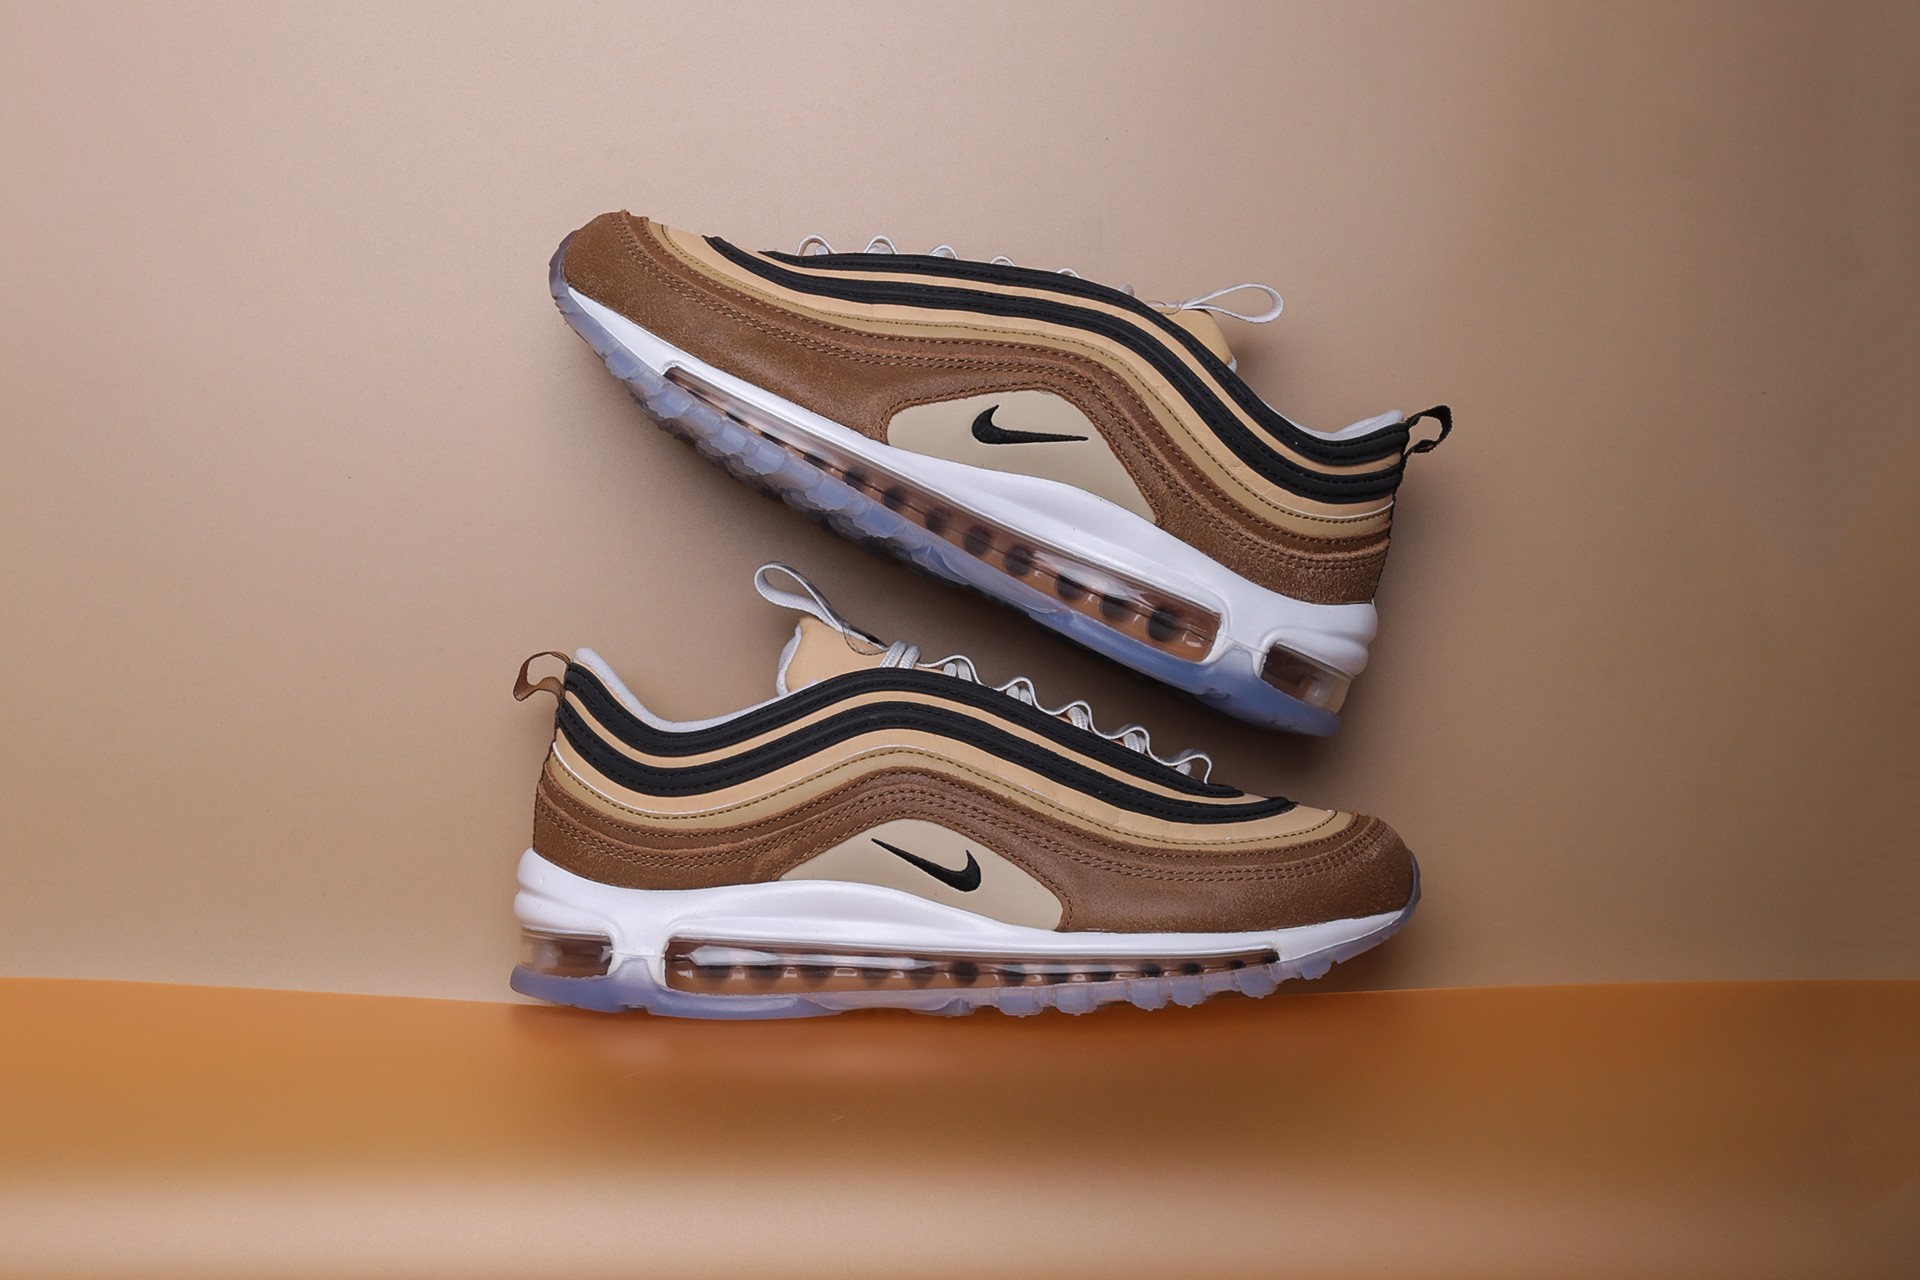 Nike Air Max 97 'Shipping Box Ale Brown' 921826-201